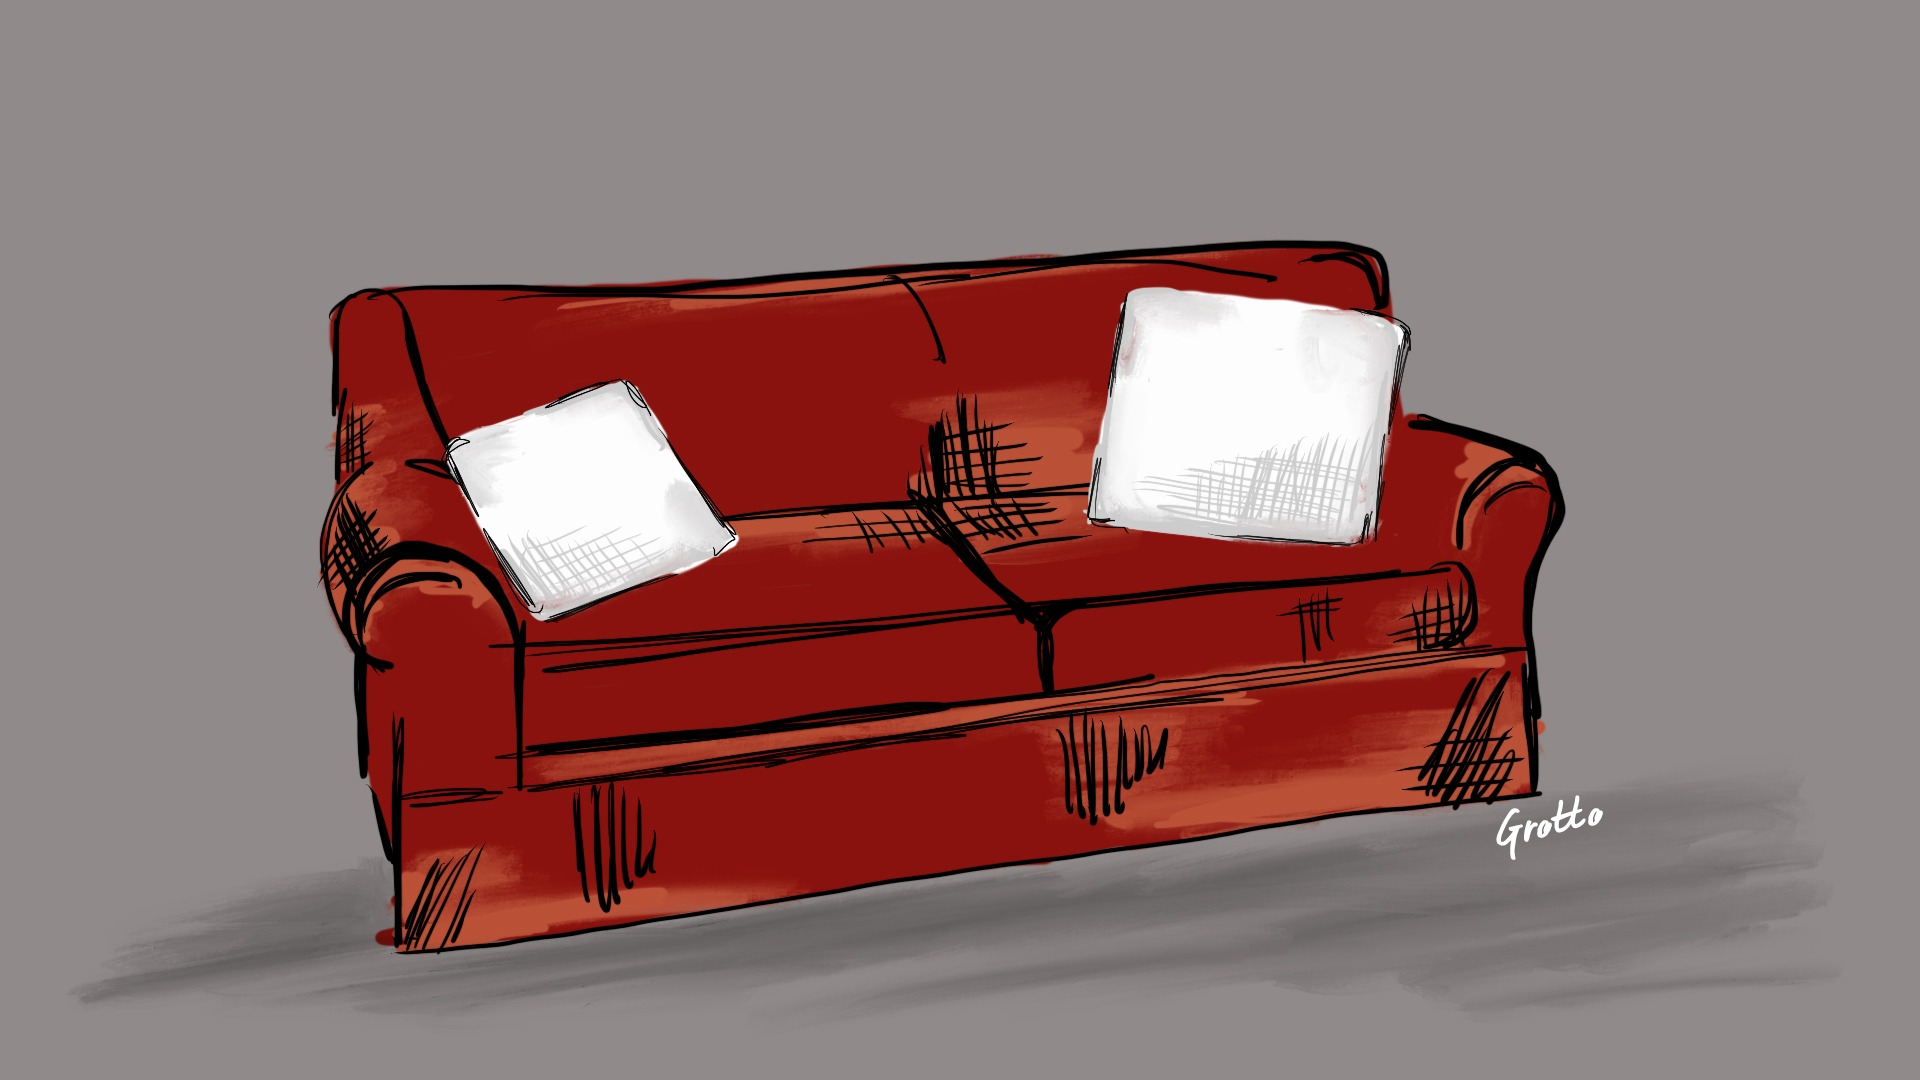 How to be hospitable to friends: host their couch-crash. Grotto illustration of a burgundy couch with two white throw pillows.